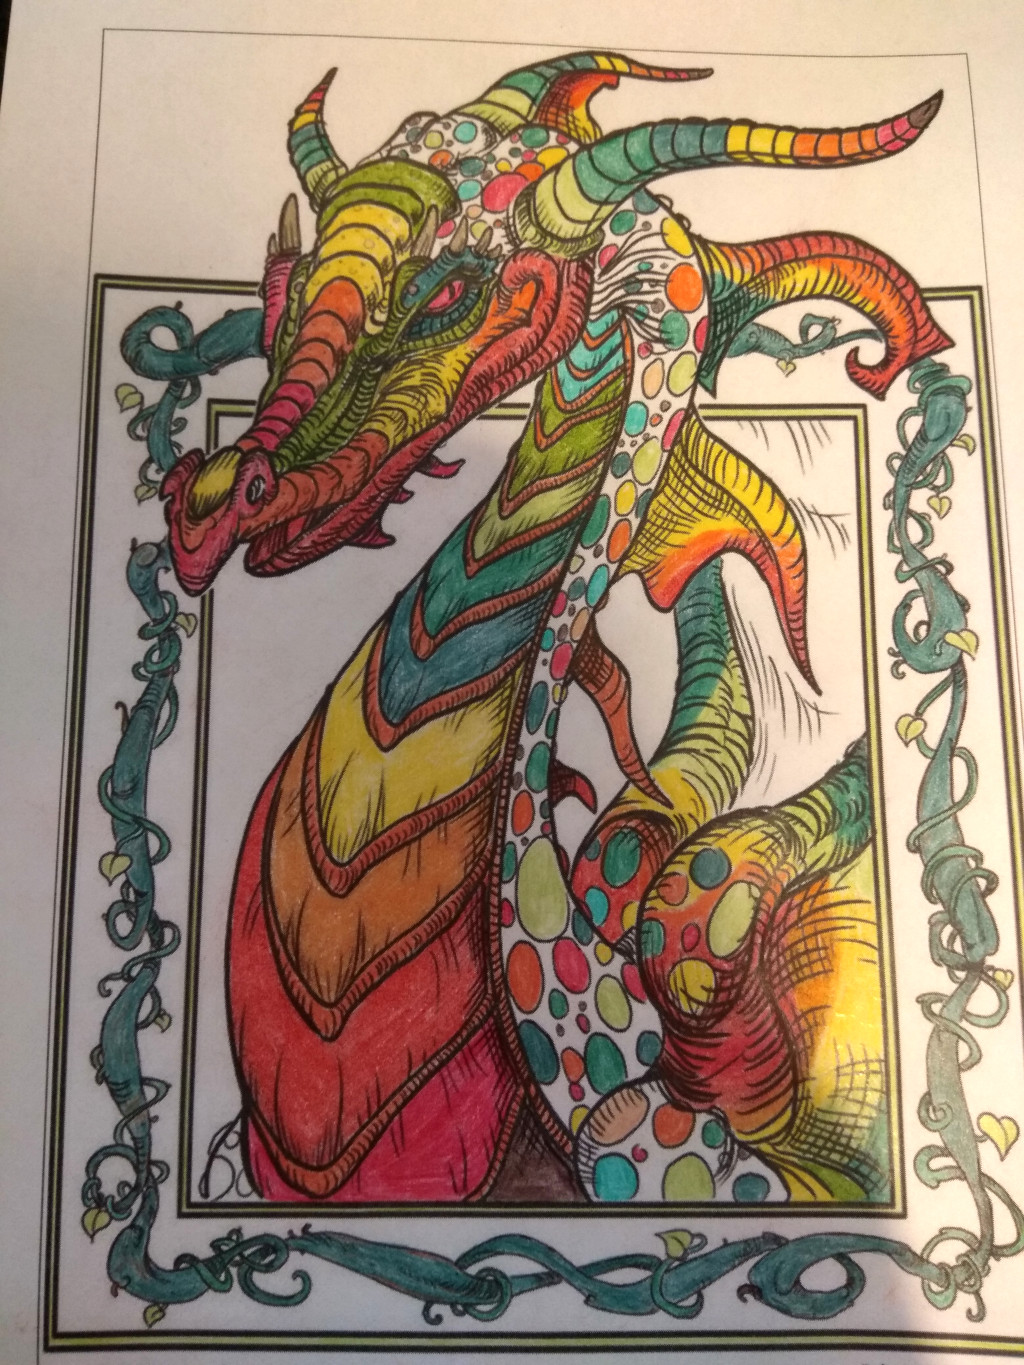 Picture of a dragon. It is colorfull with different shades of red, orange, yellow, and green used.